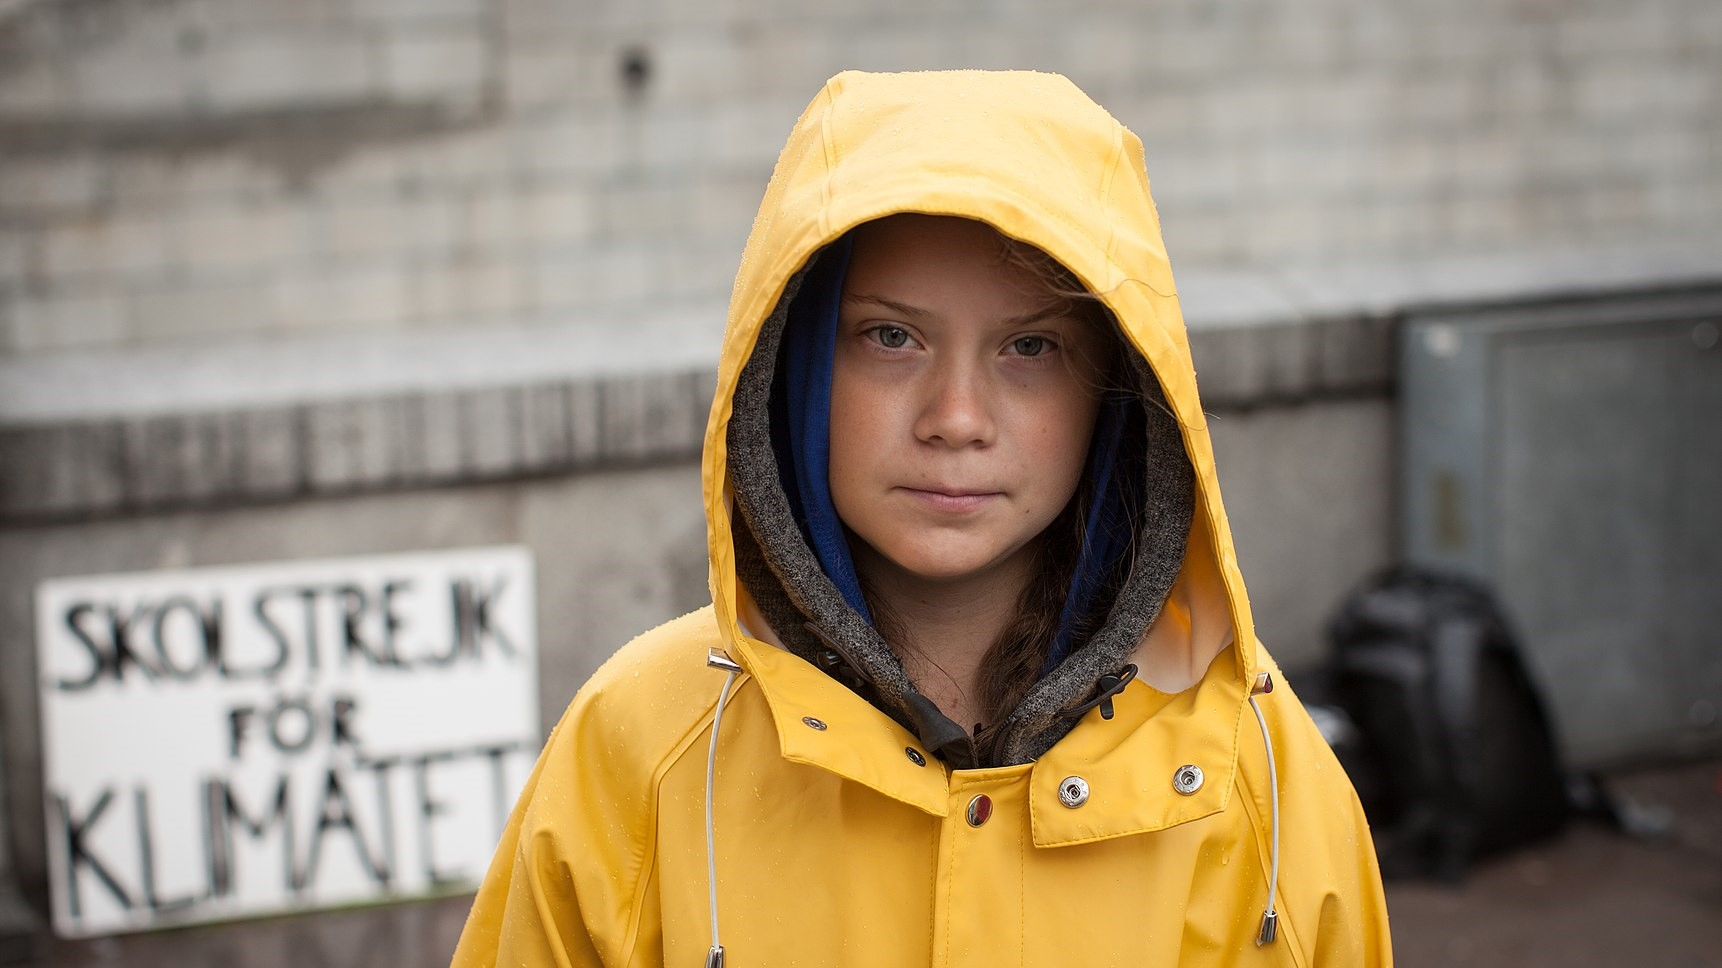 Greta thunberg on the street